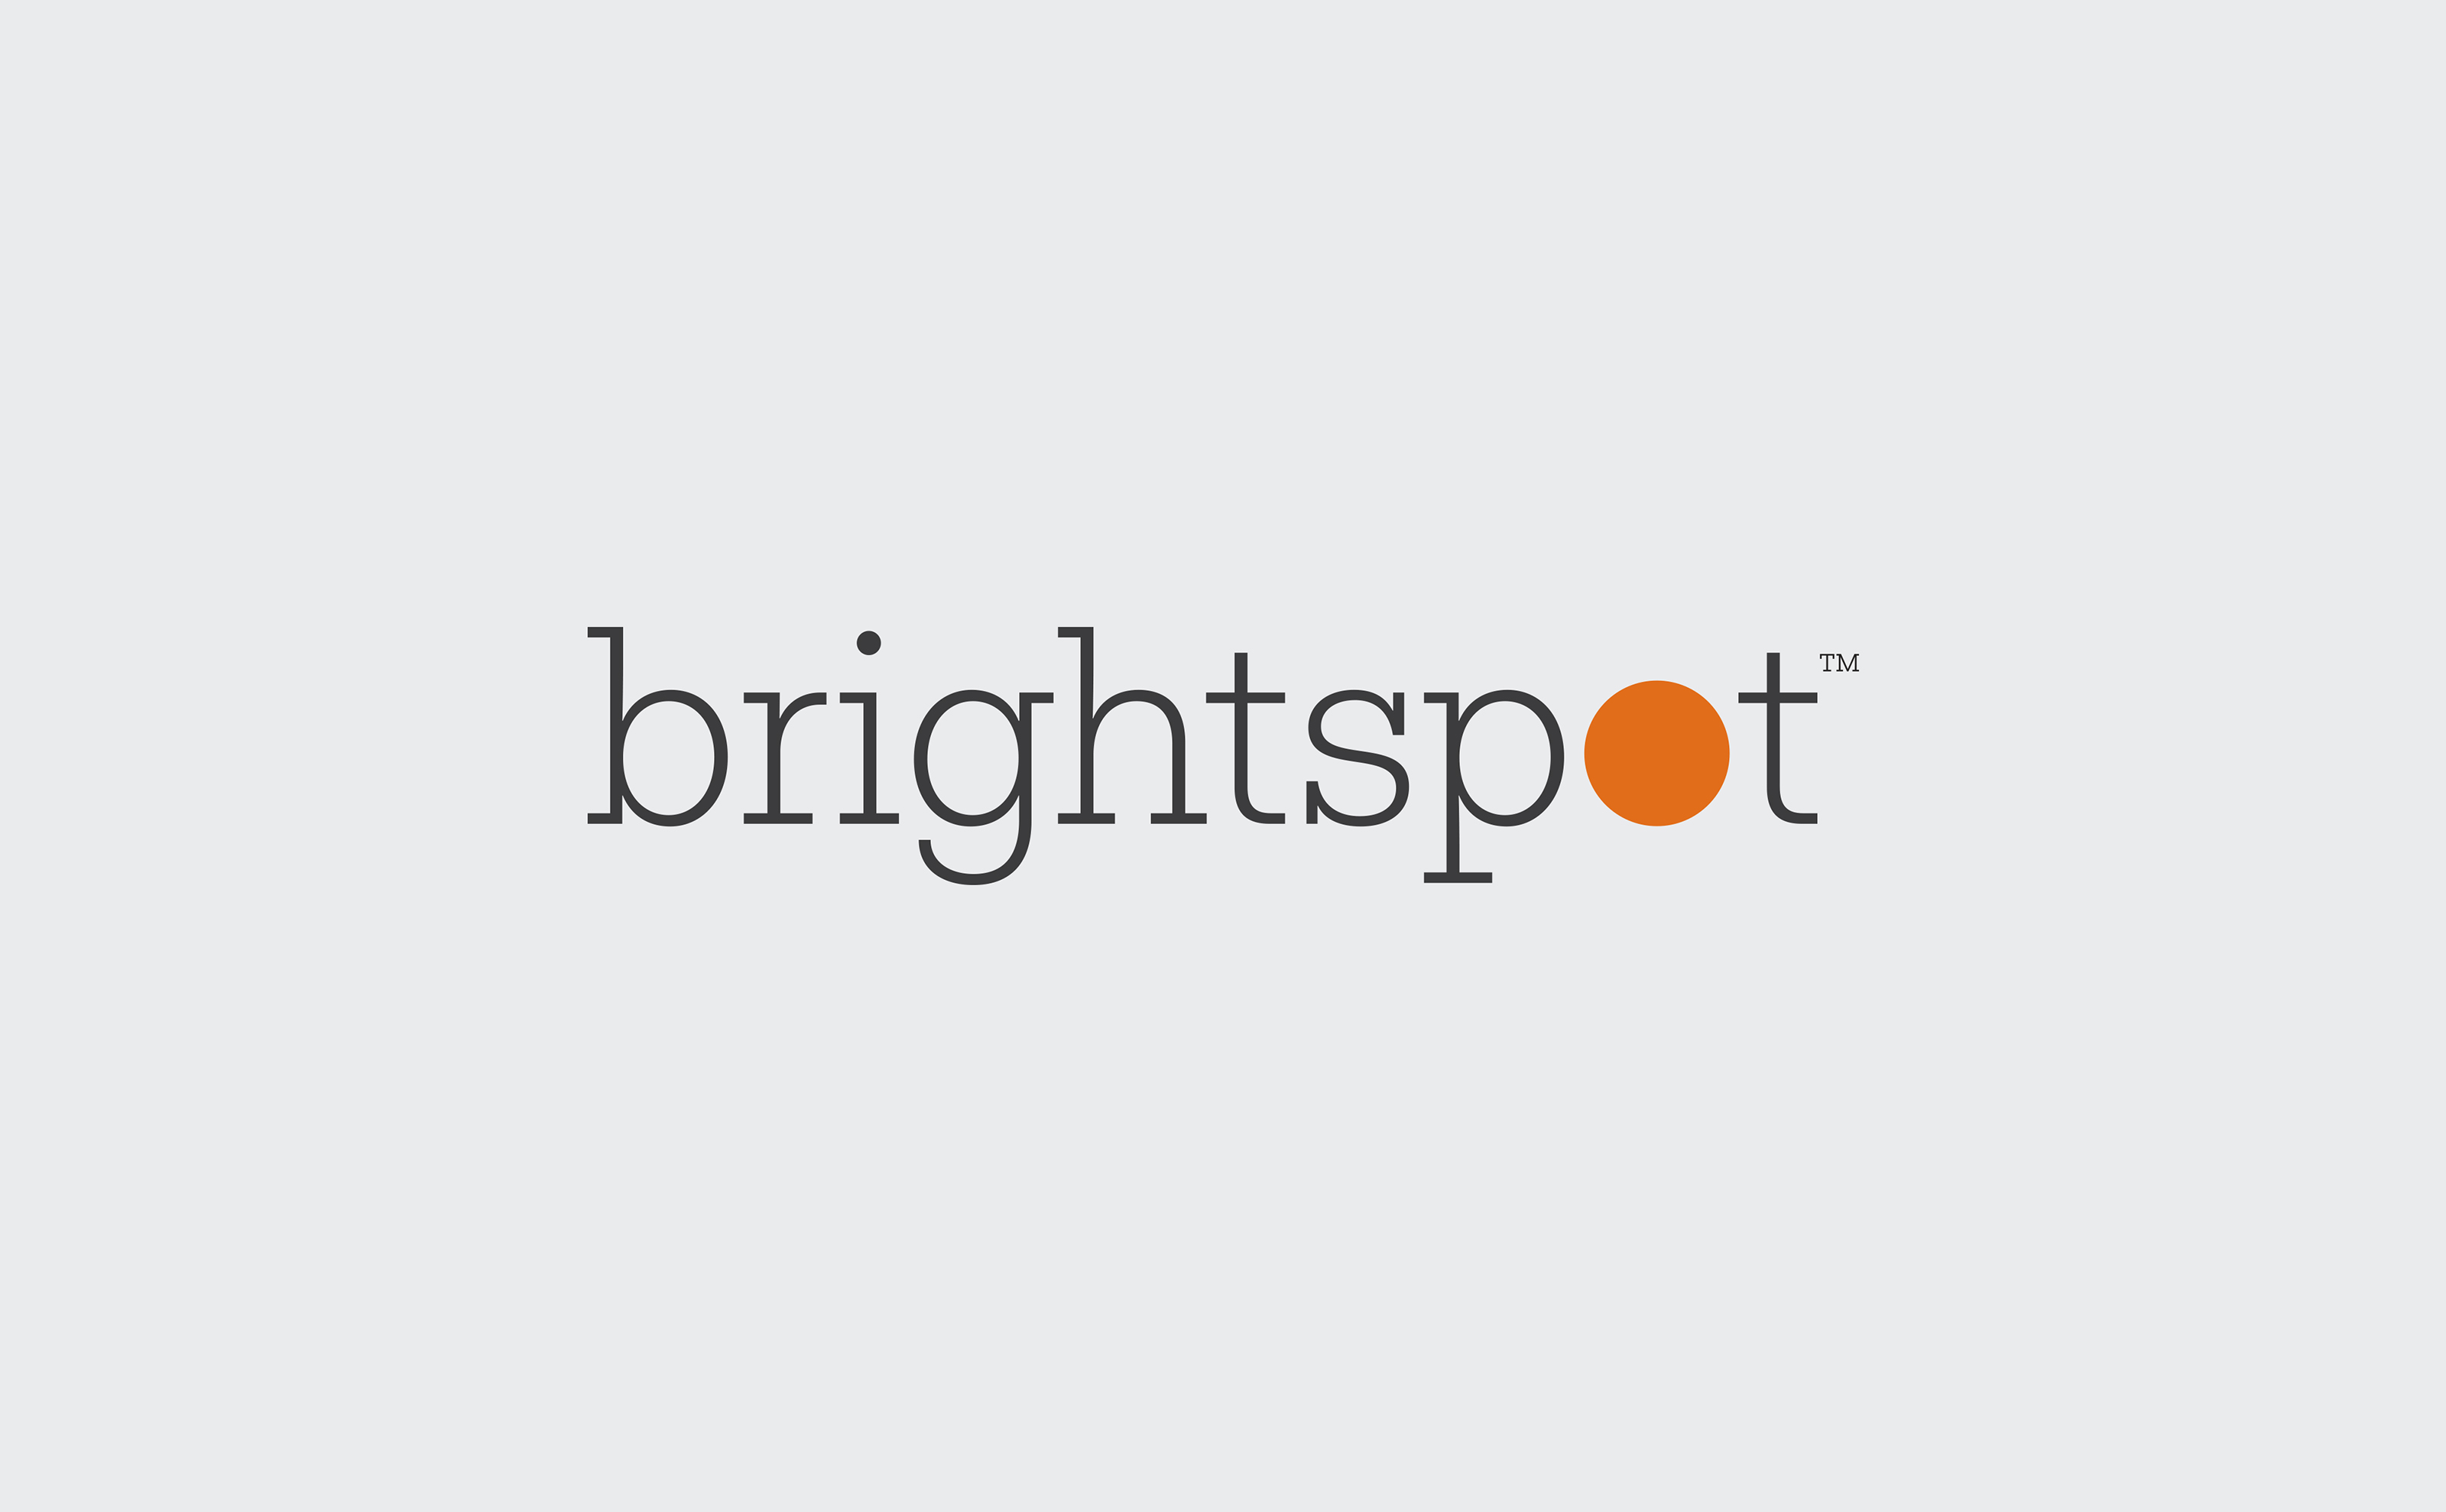 Brightspot identity for Target